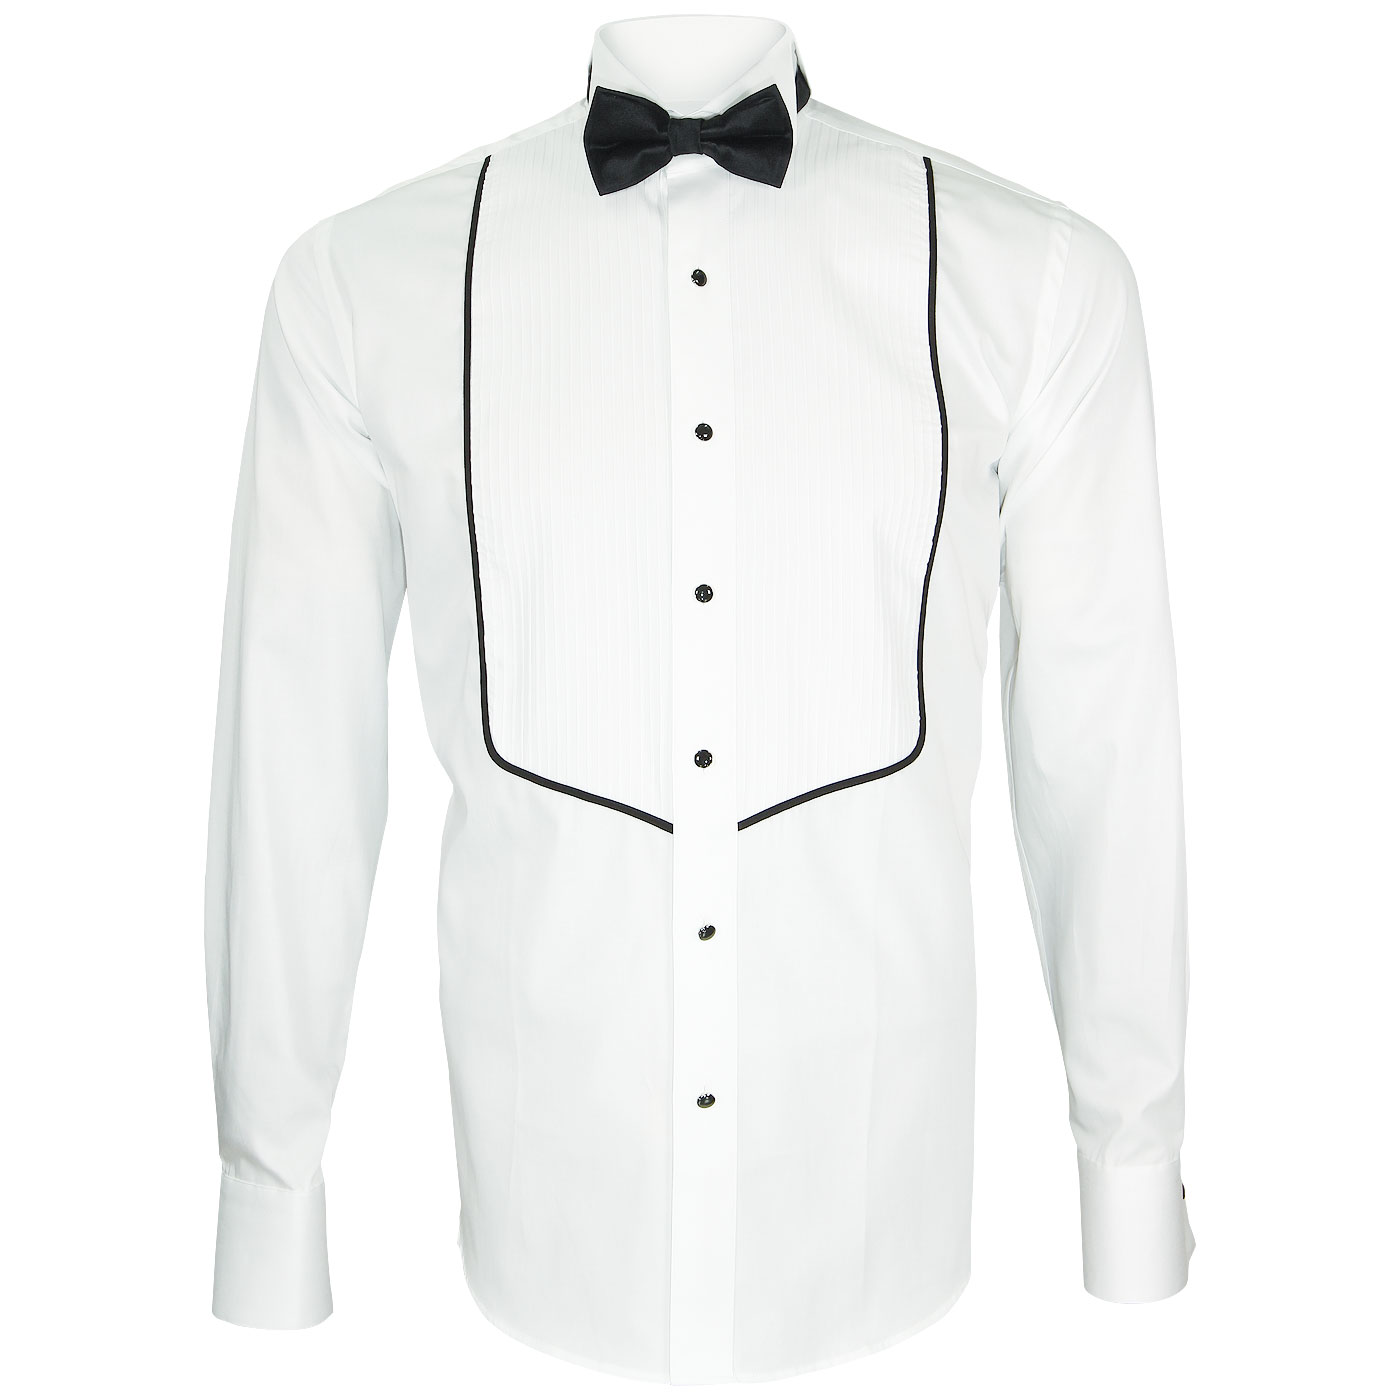 Men's Event Shirt Dressed absolute elegance